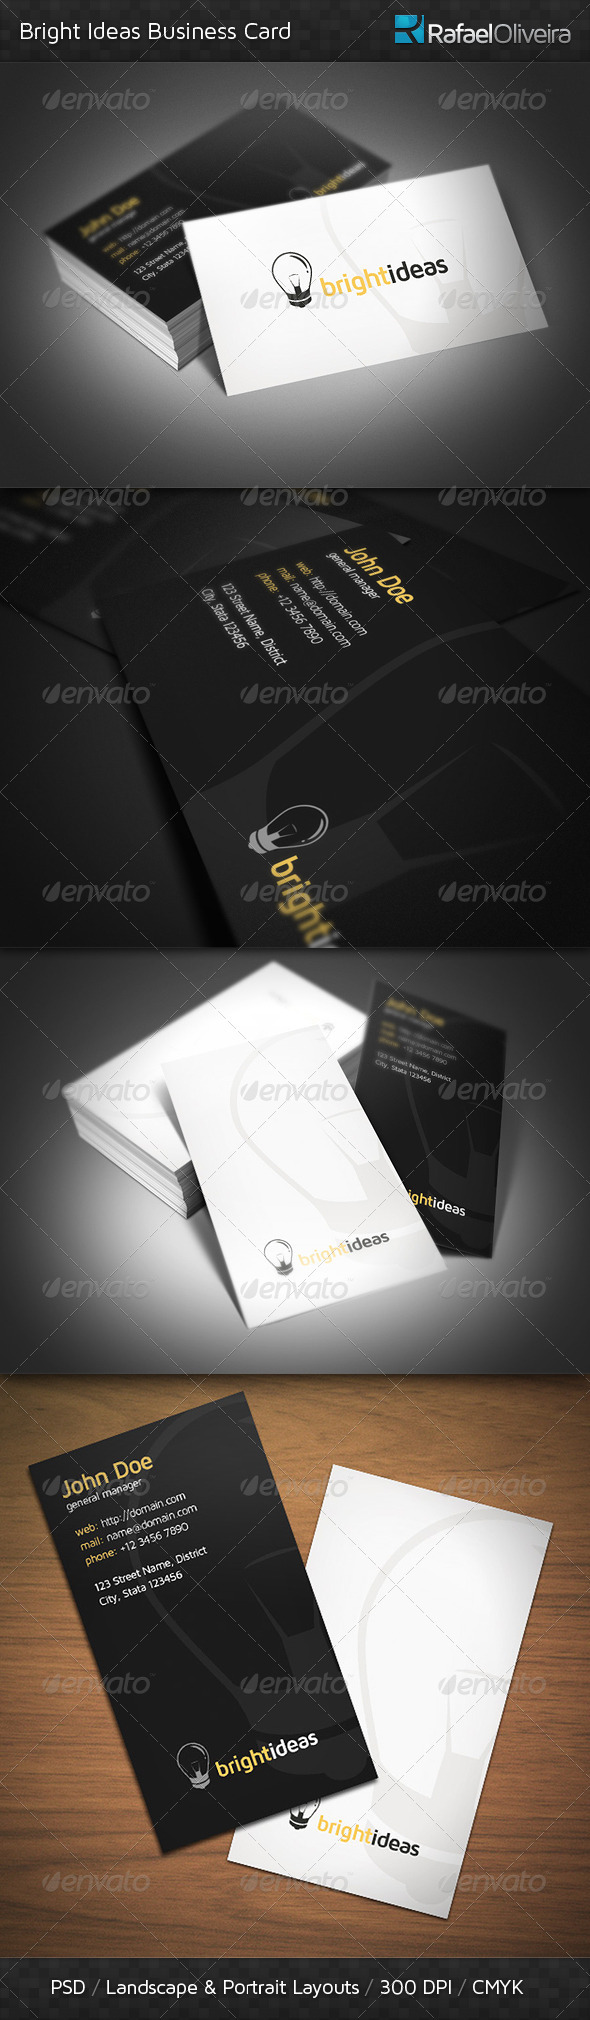 GraphicRiver Bright Ideas Business Card 3882014